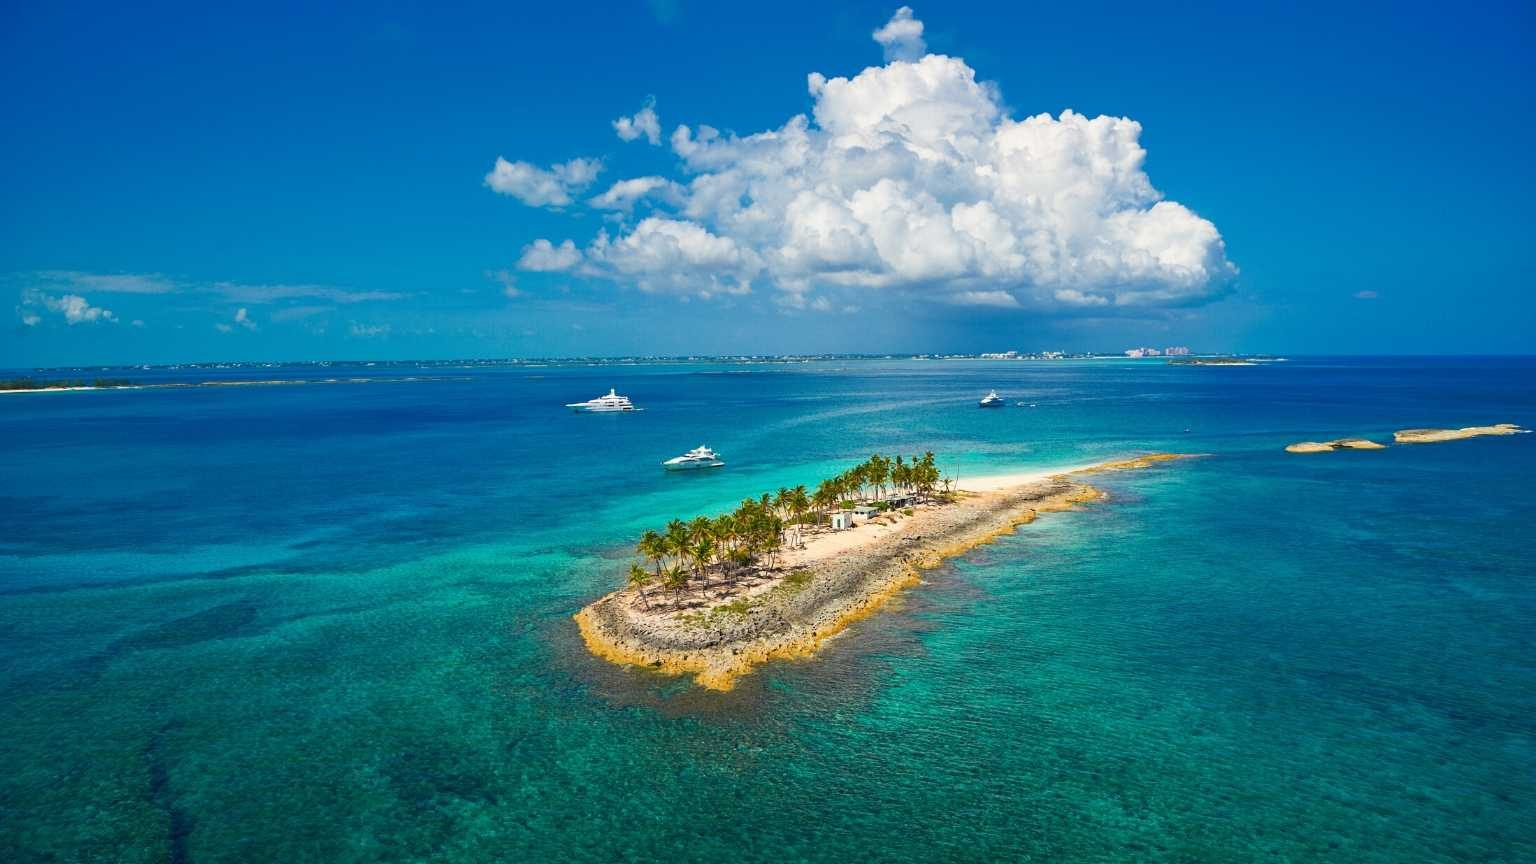 Panoramic view of an island on the Caribbean.